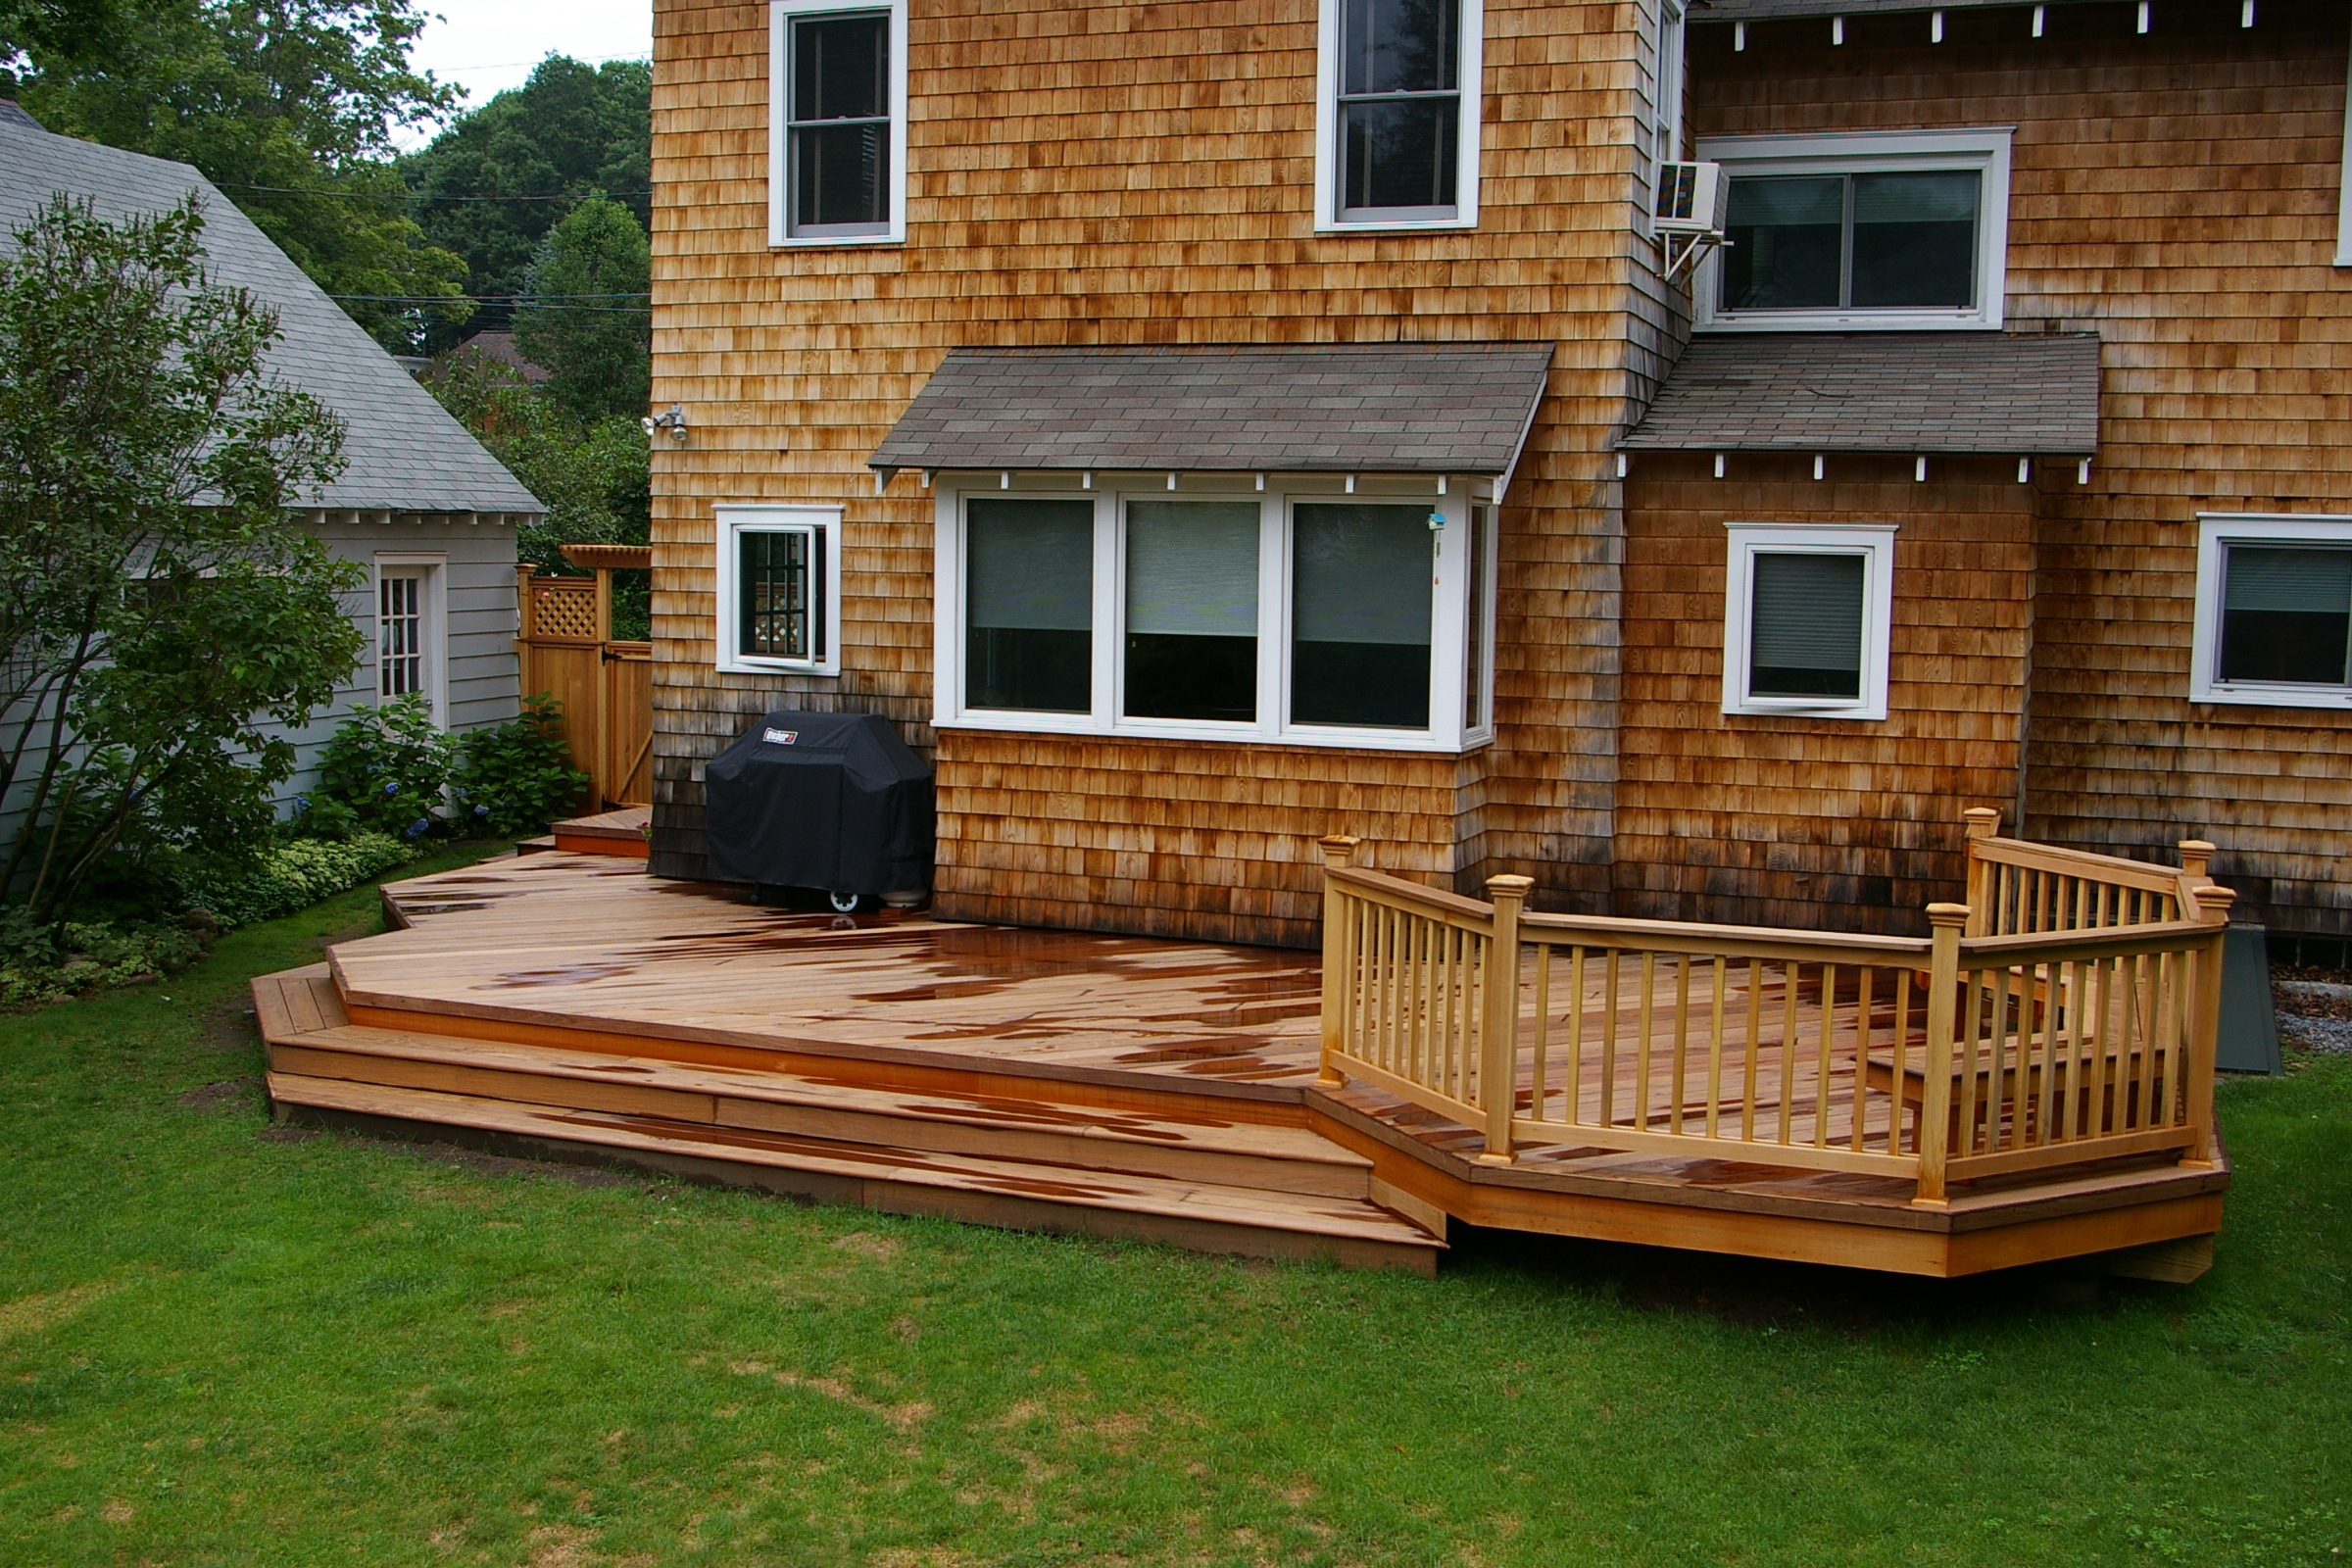 Backyard Deck Design Ideas Air Home Products Wonderful Wood Deck intended for Patio Deck Ideas Backyard